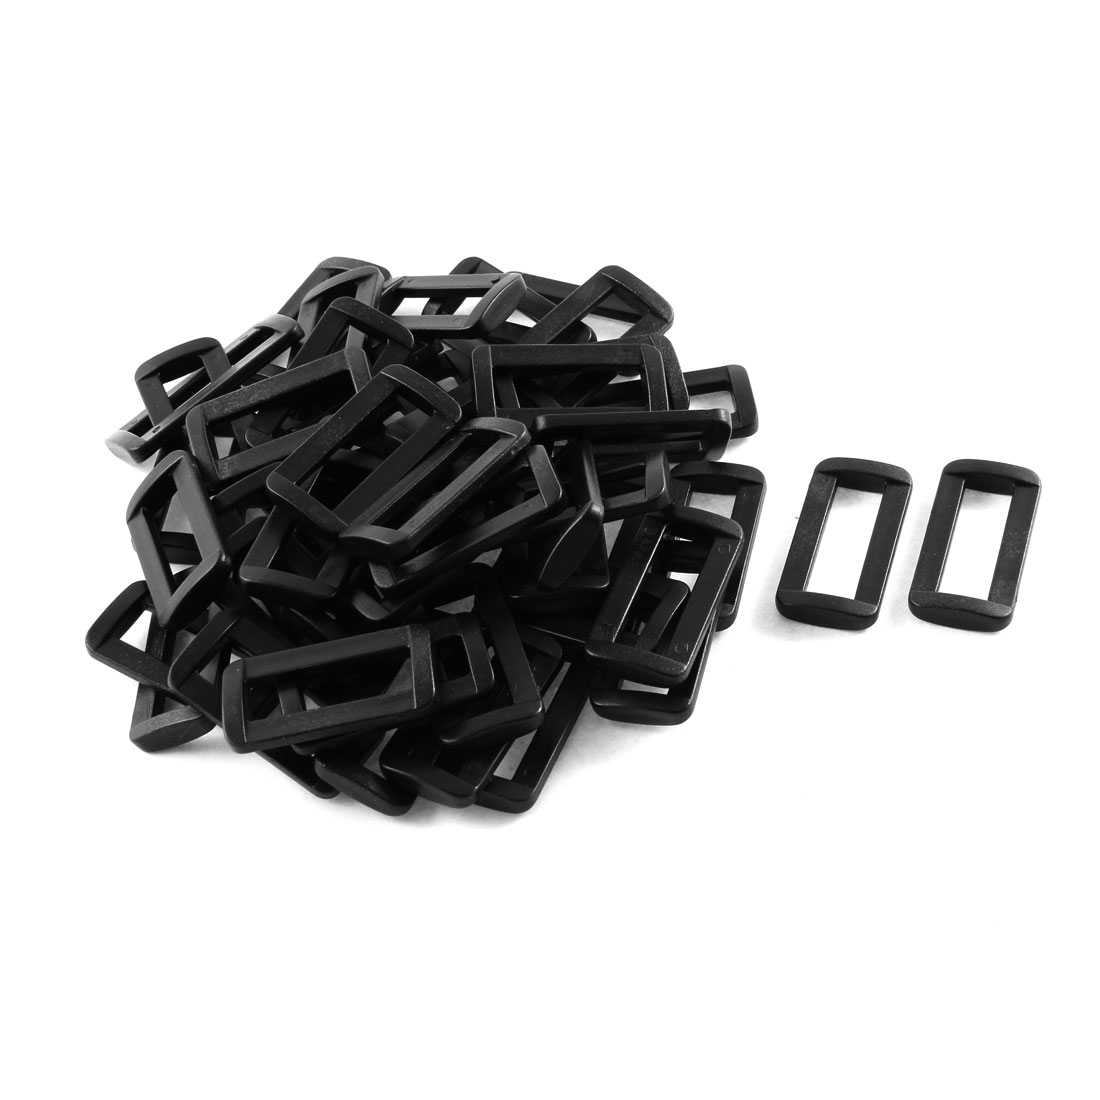 50pcs Black Plastic Bar Slides Buckles for 32mm Webbing Strap